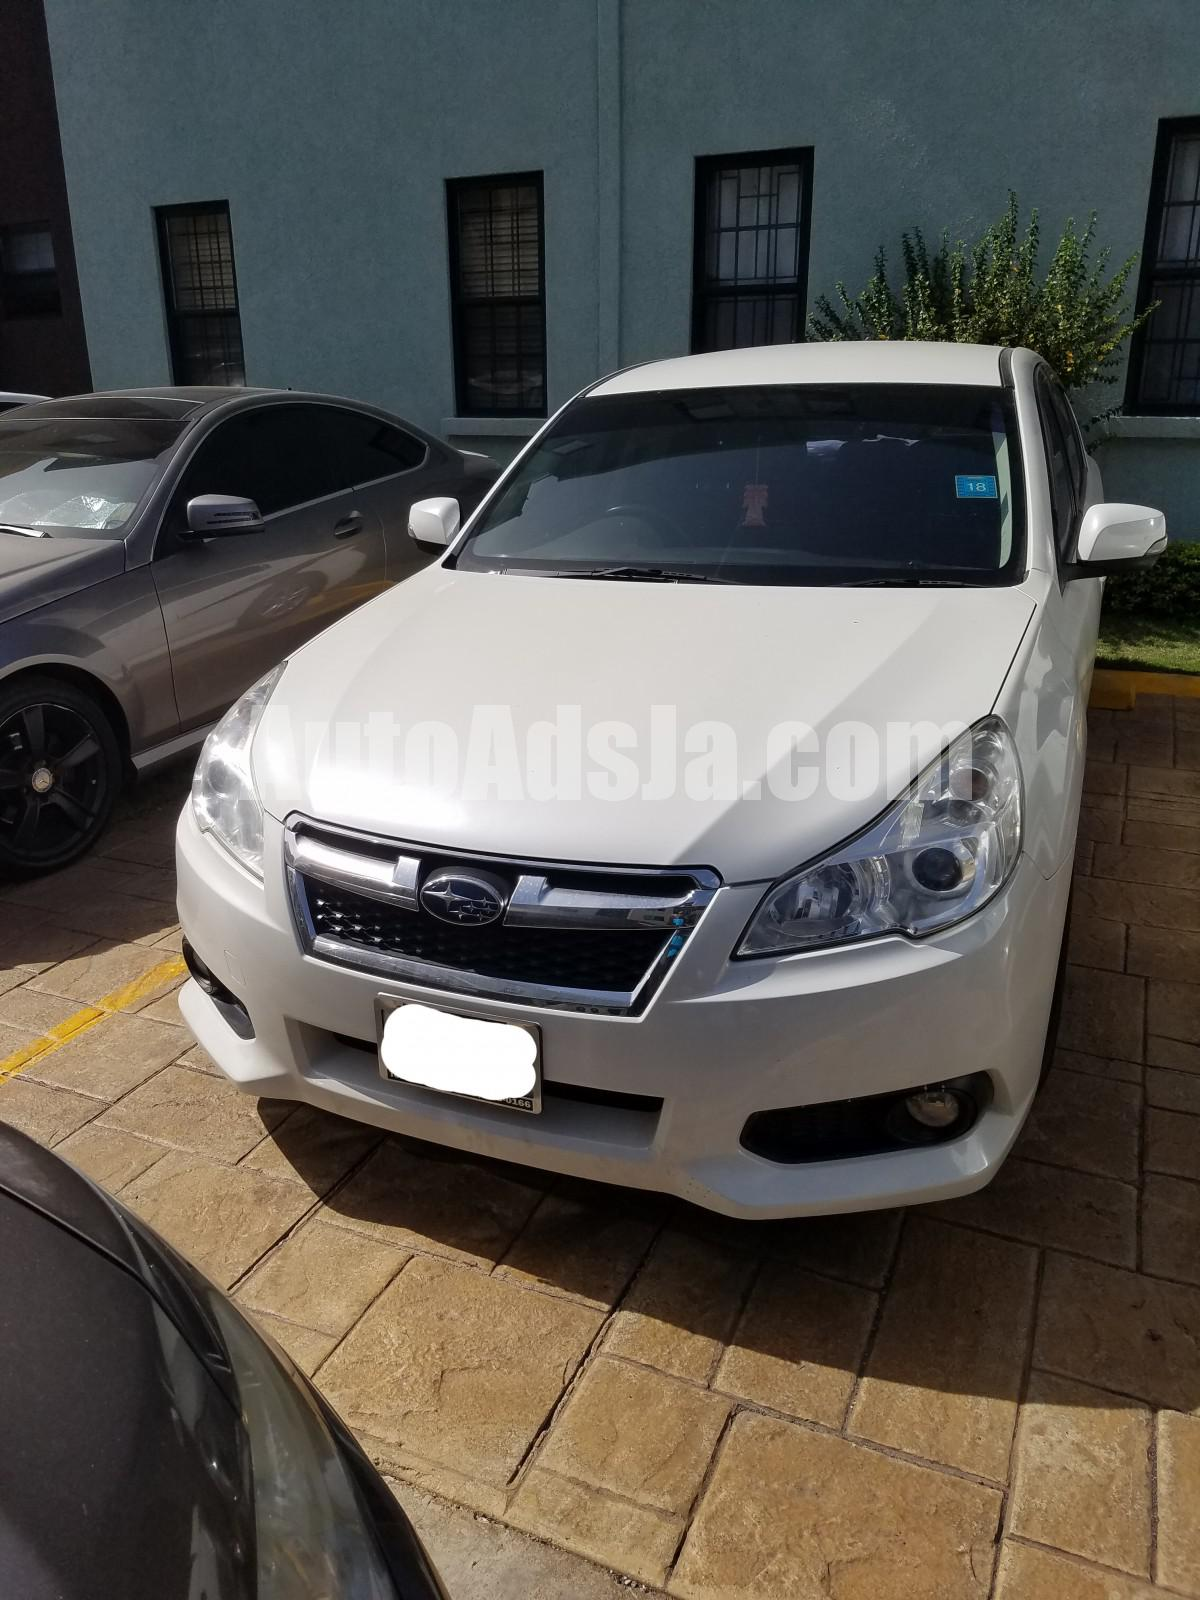 2013 subaru legacy for sale in jamaica autoads jamaica. Black Bedroom Furniture Sets. Home Design Ideas